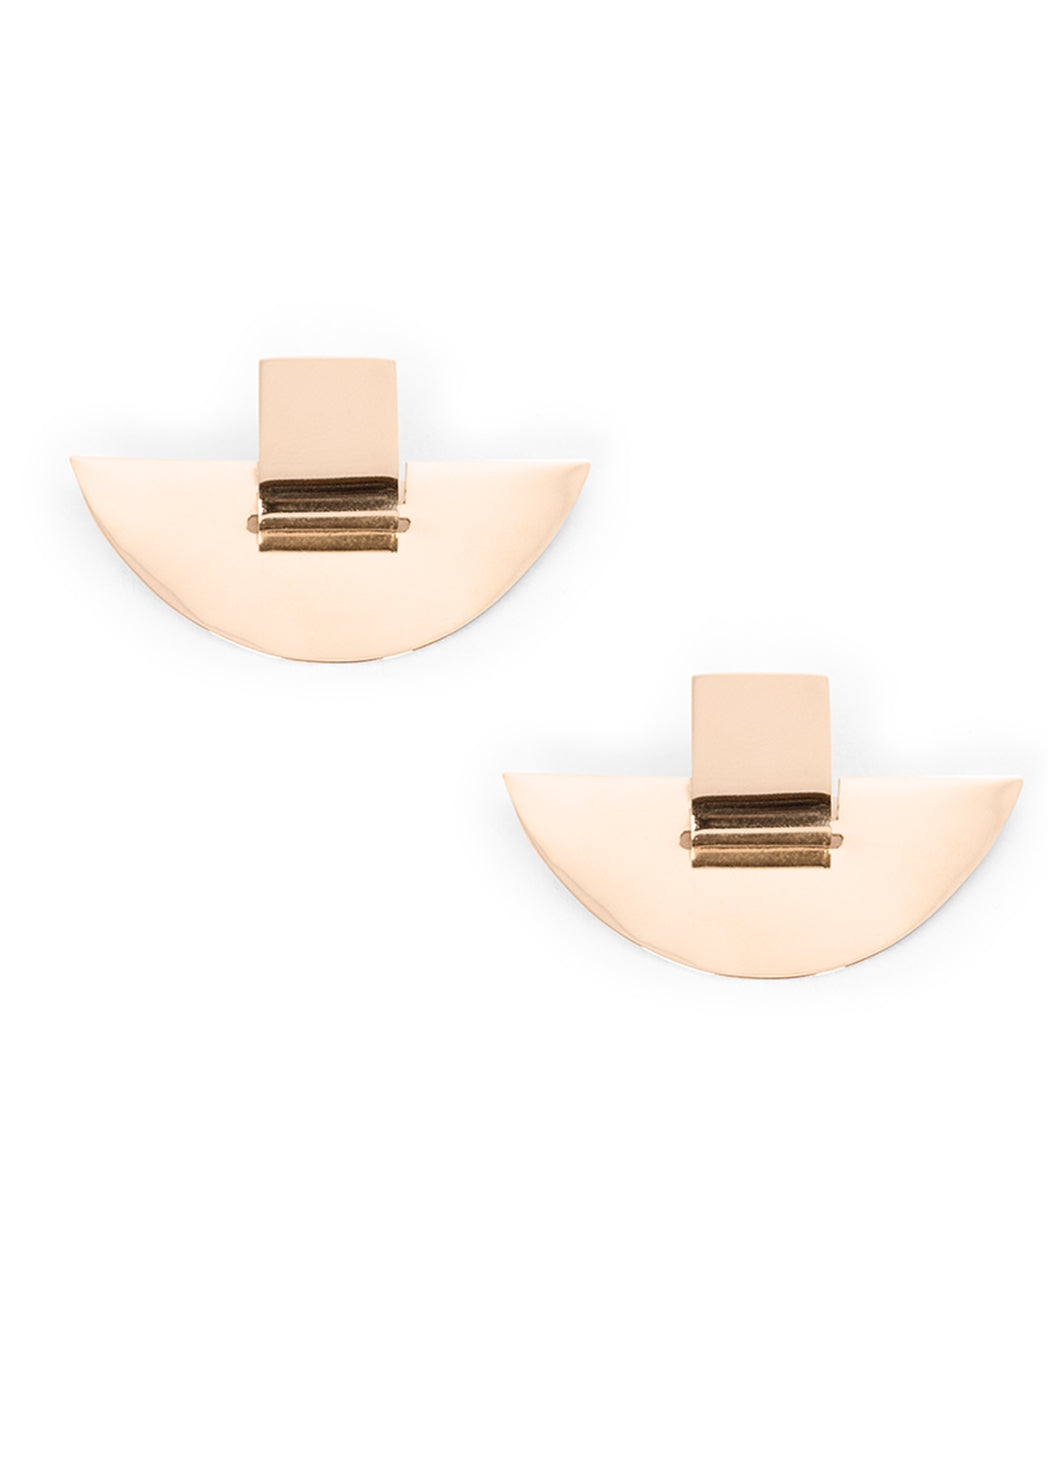 Suspended Slice Modular Earrings